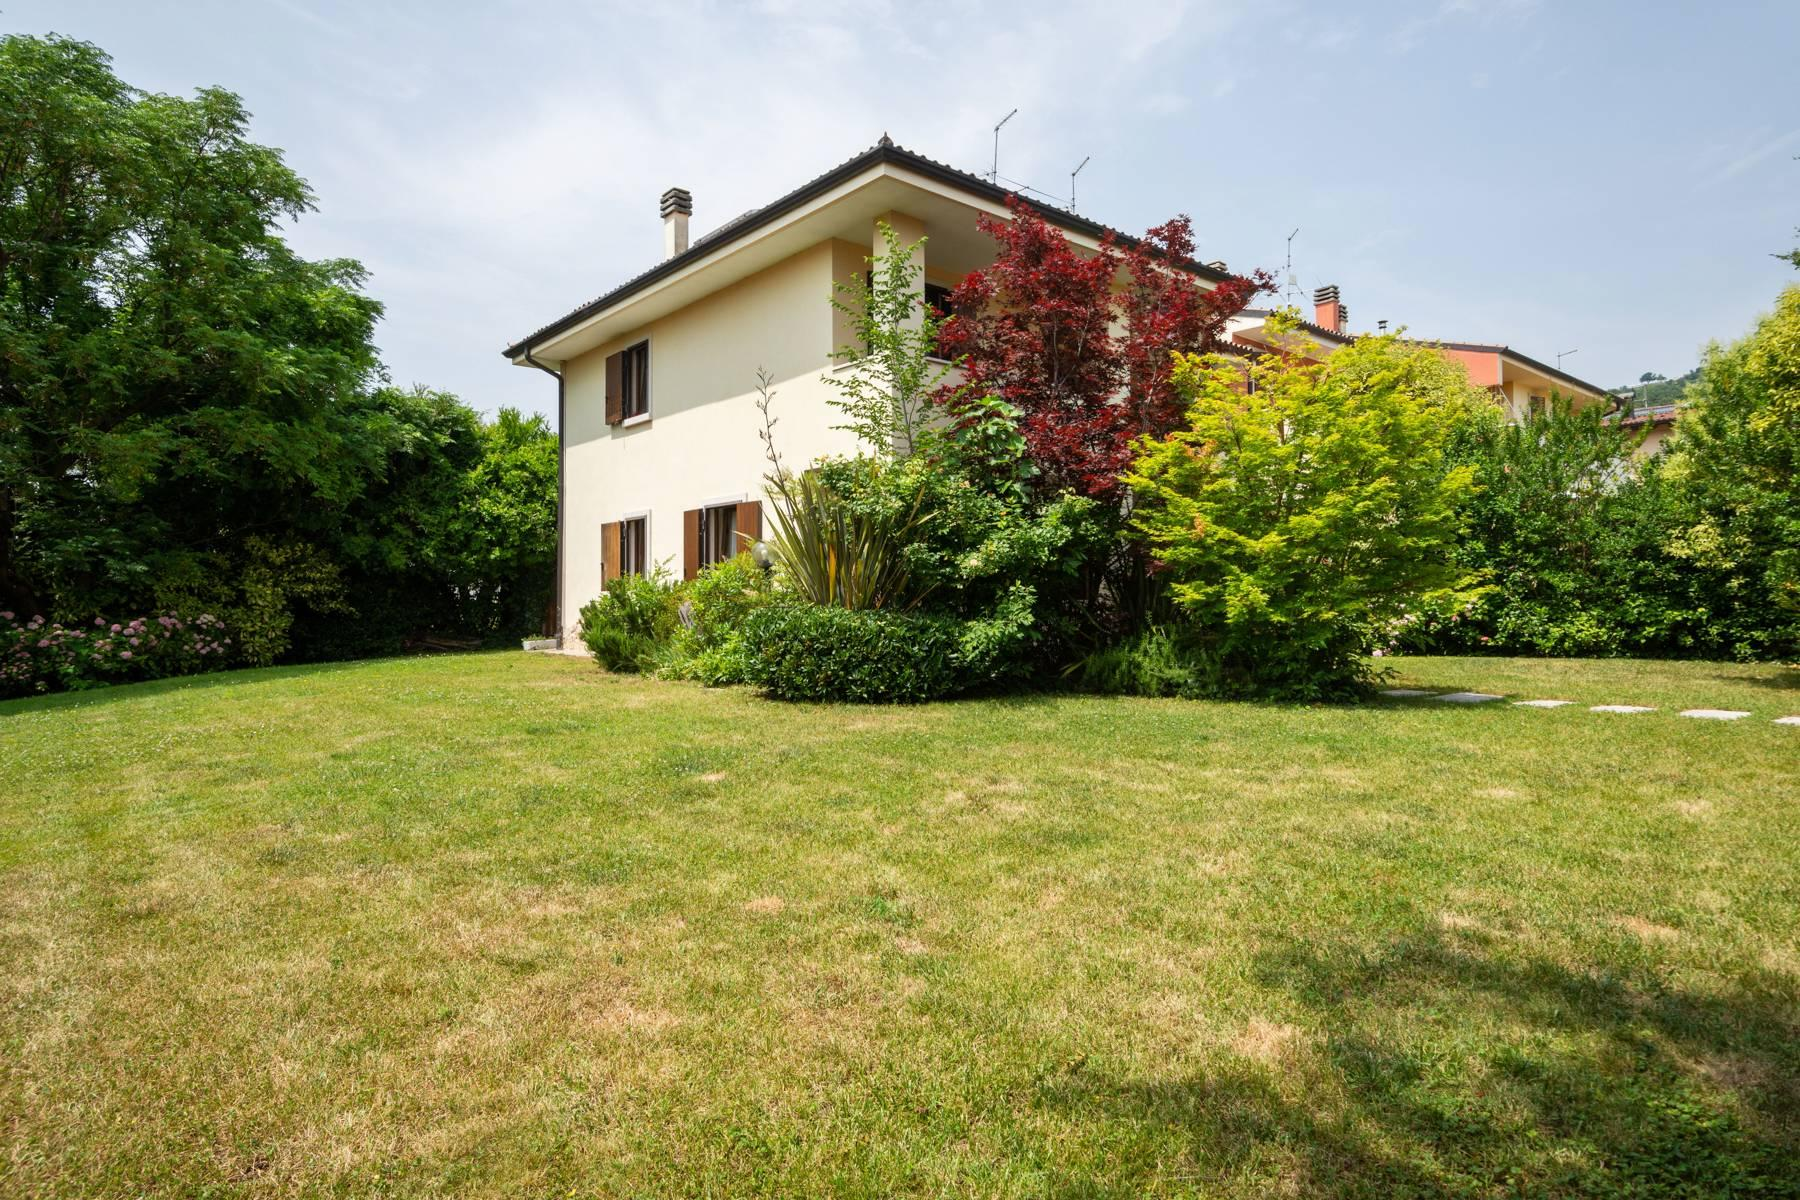 Independent villa with wide garden, just a few steps from the Lake - 6